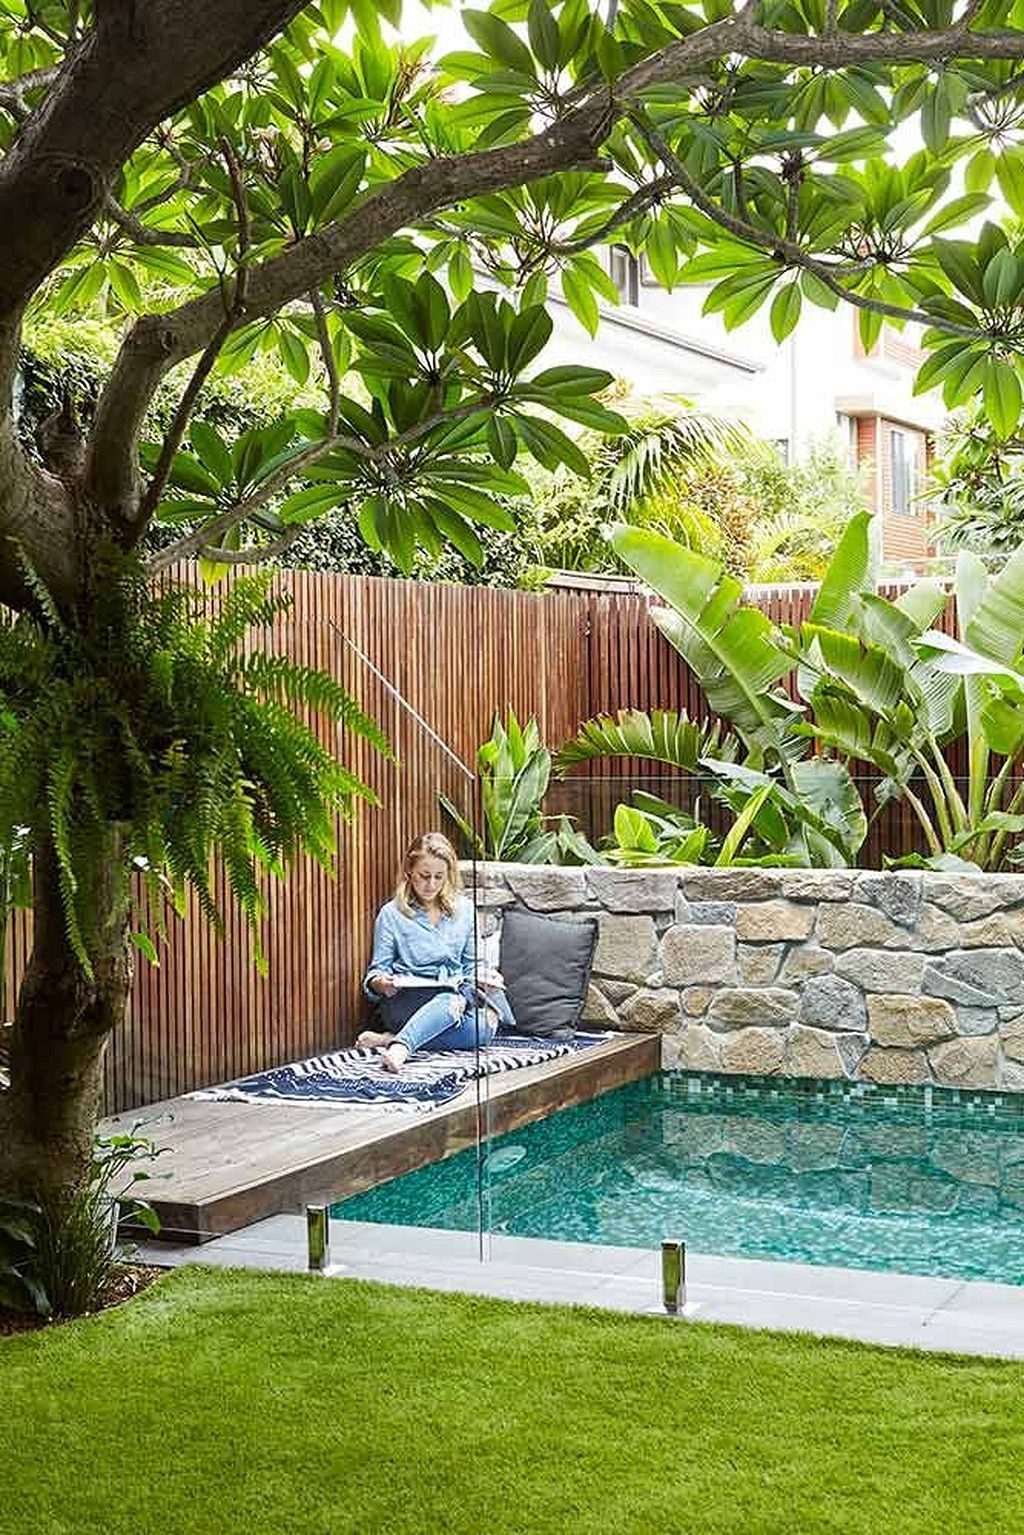 Pin By Hg Magazine On Garden And Yard Swimming Pools 20 Of The Best As For Swimming Pool Decorat In 2020 Small Backyard Pools Small Pool Design Backyard Pool Designs